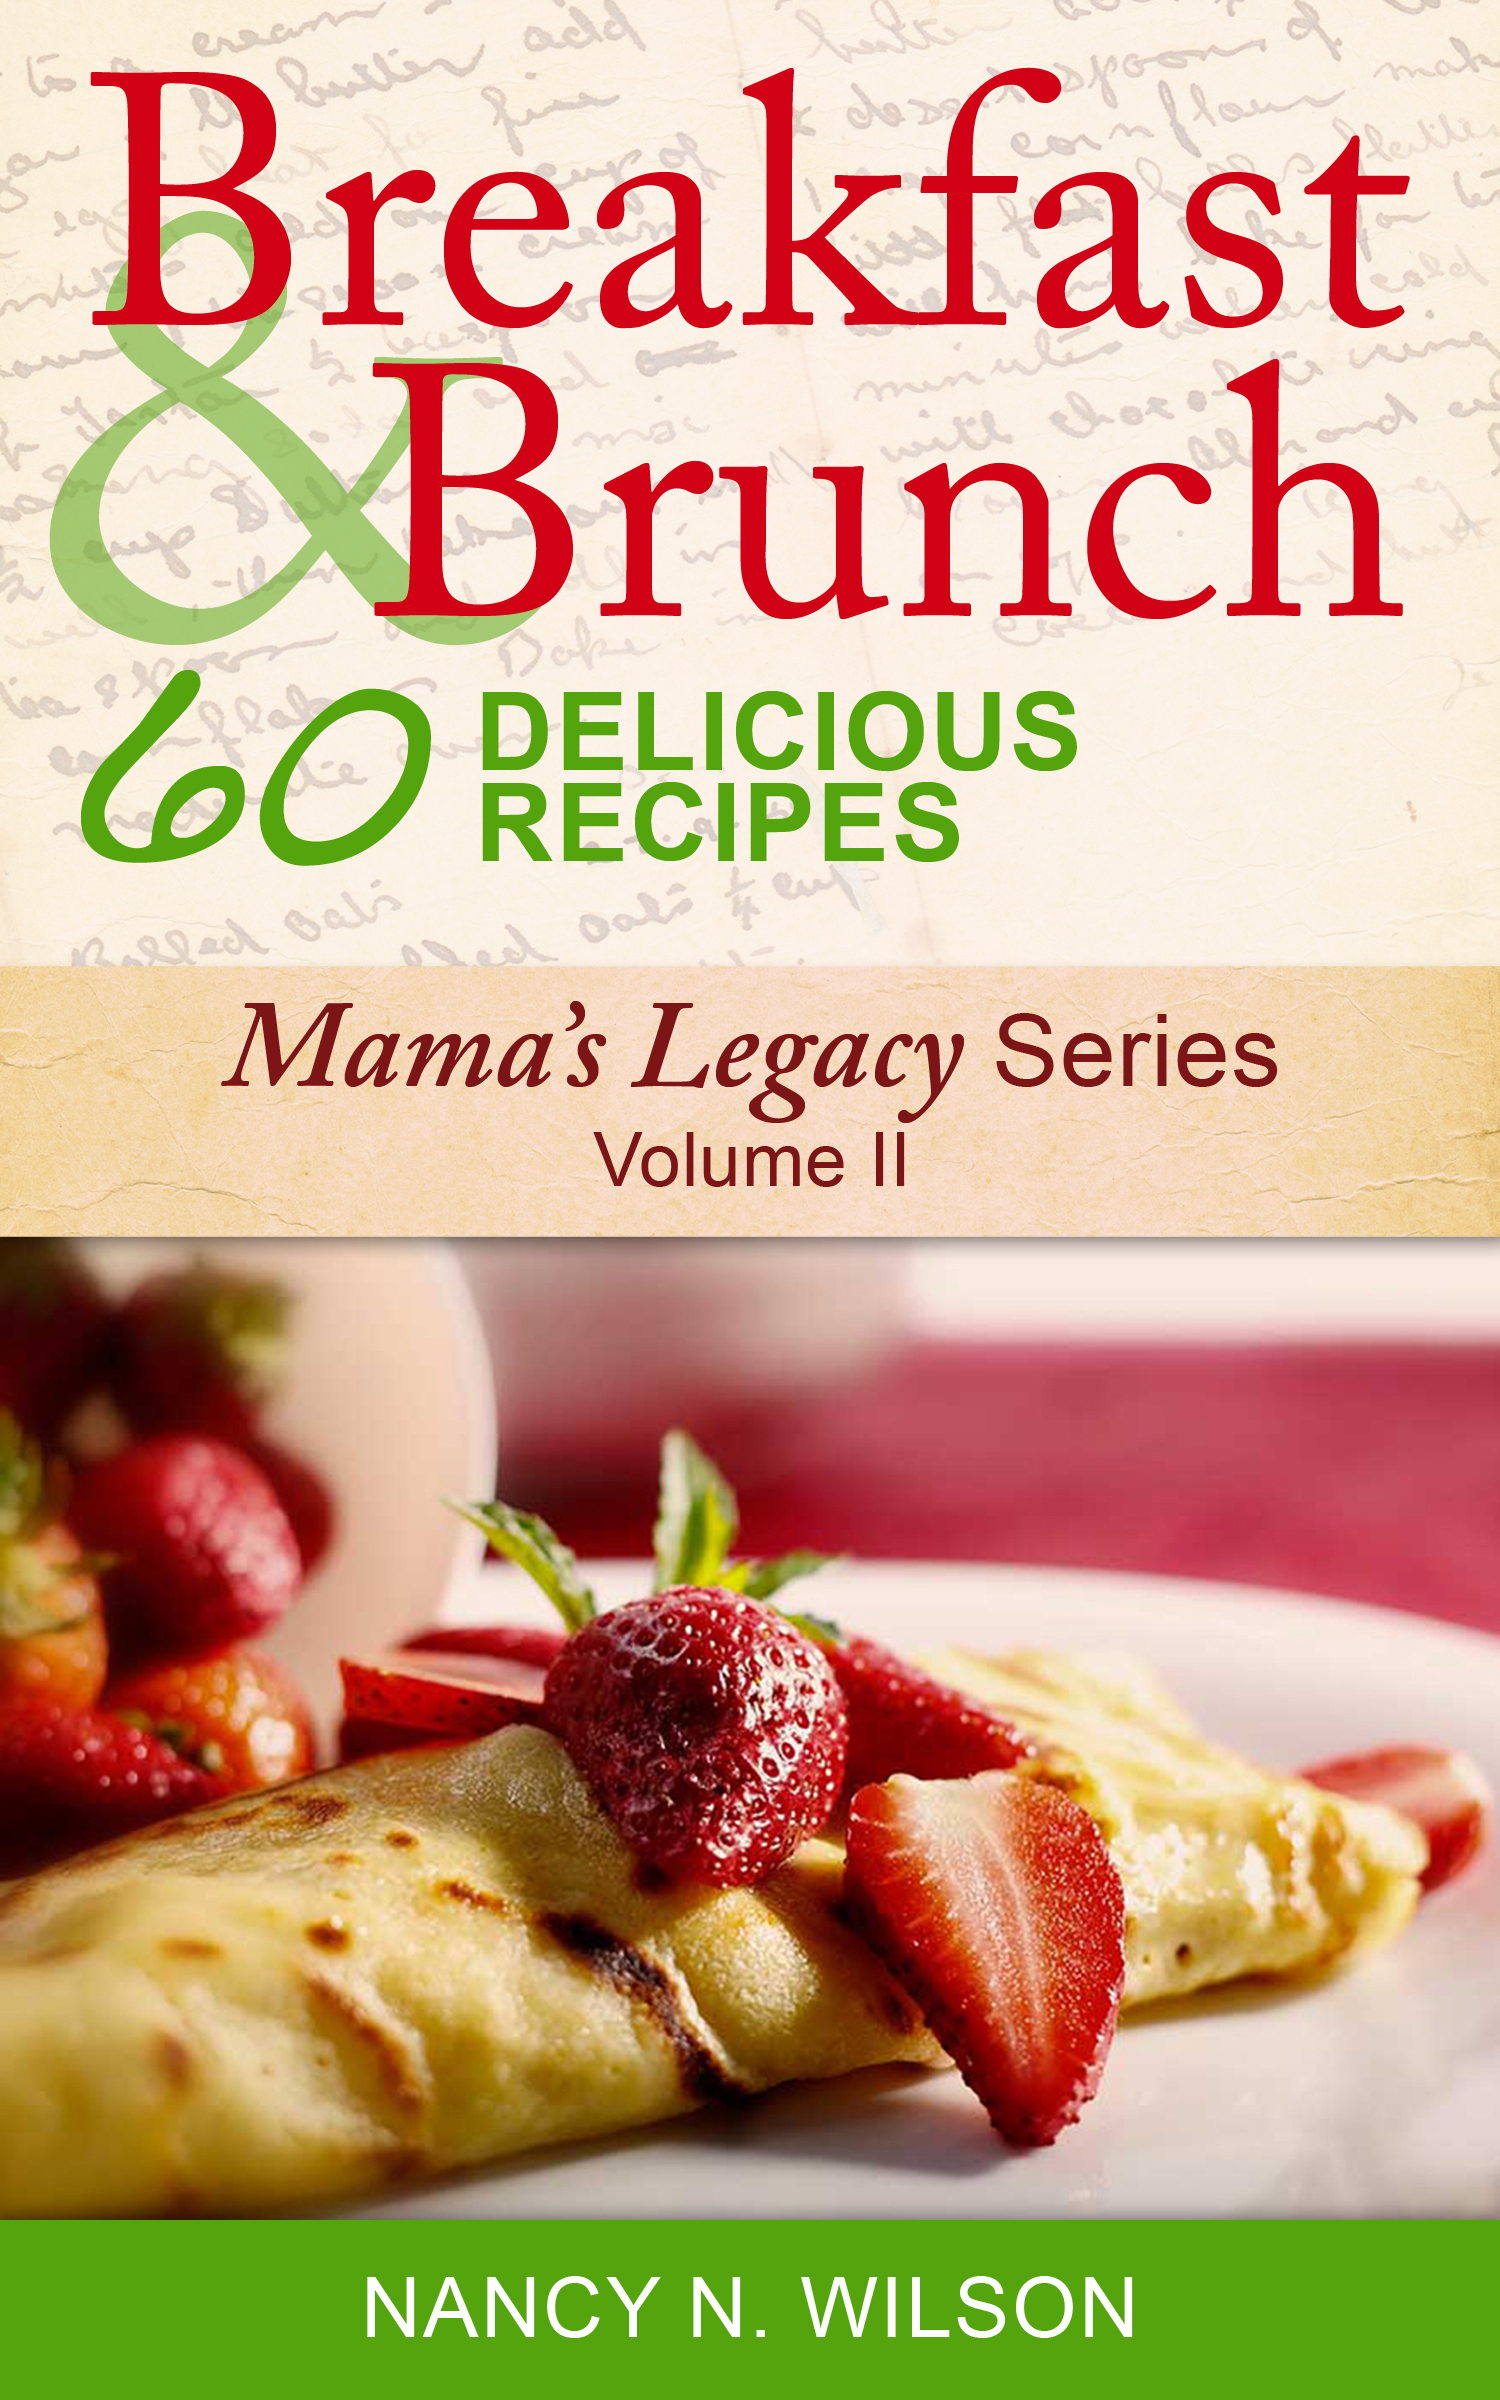 breakfast and brunch - 60 delicious recipes - healthy living